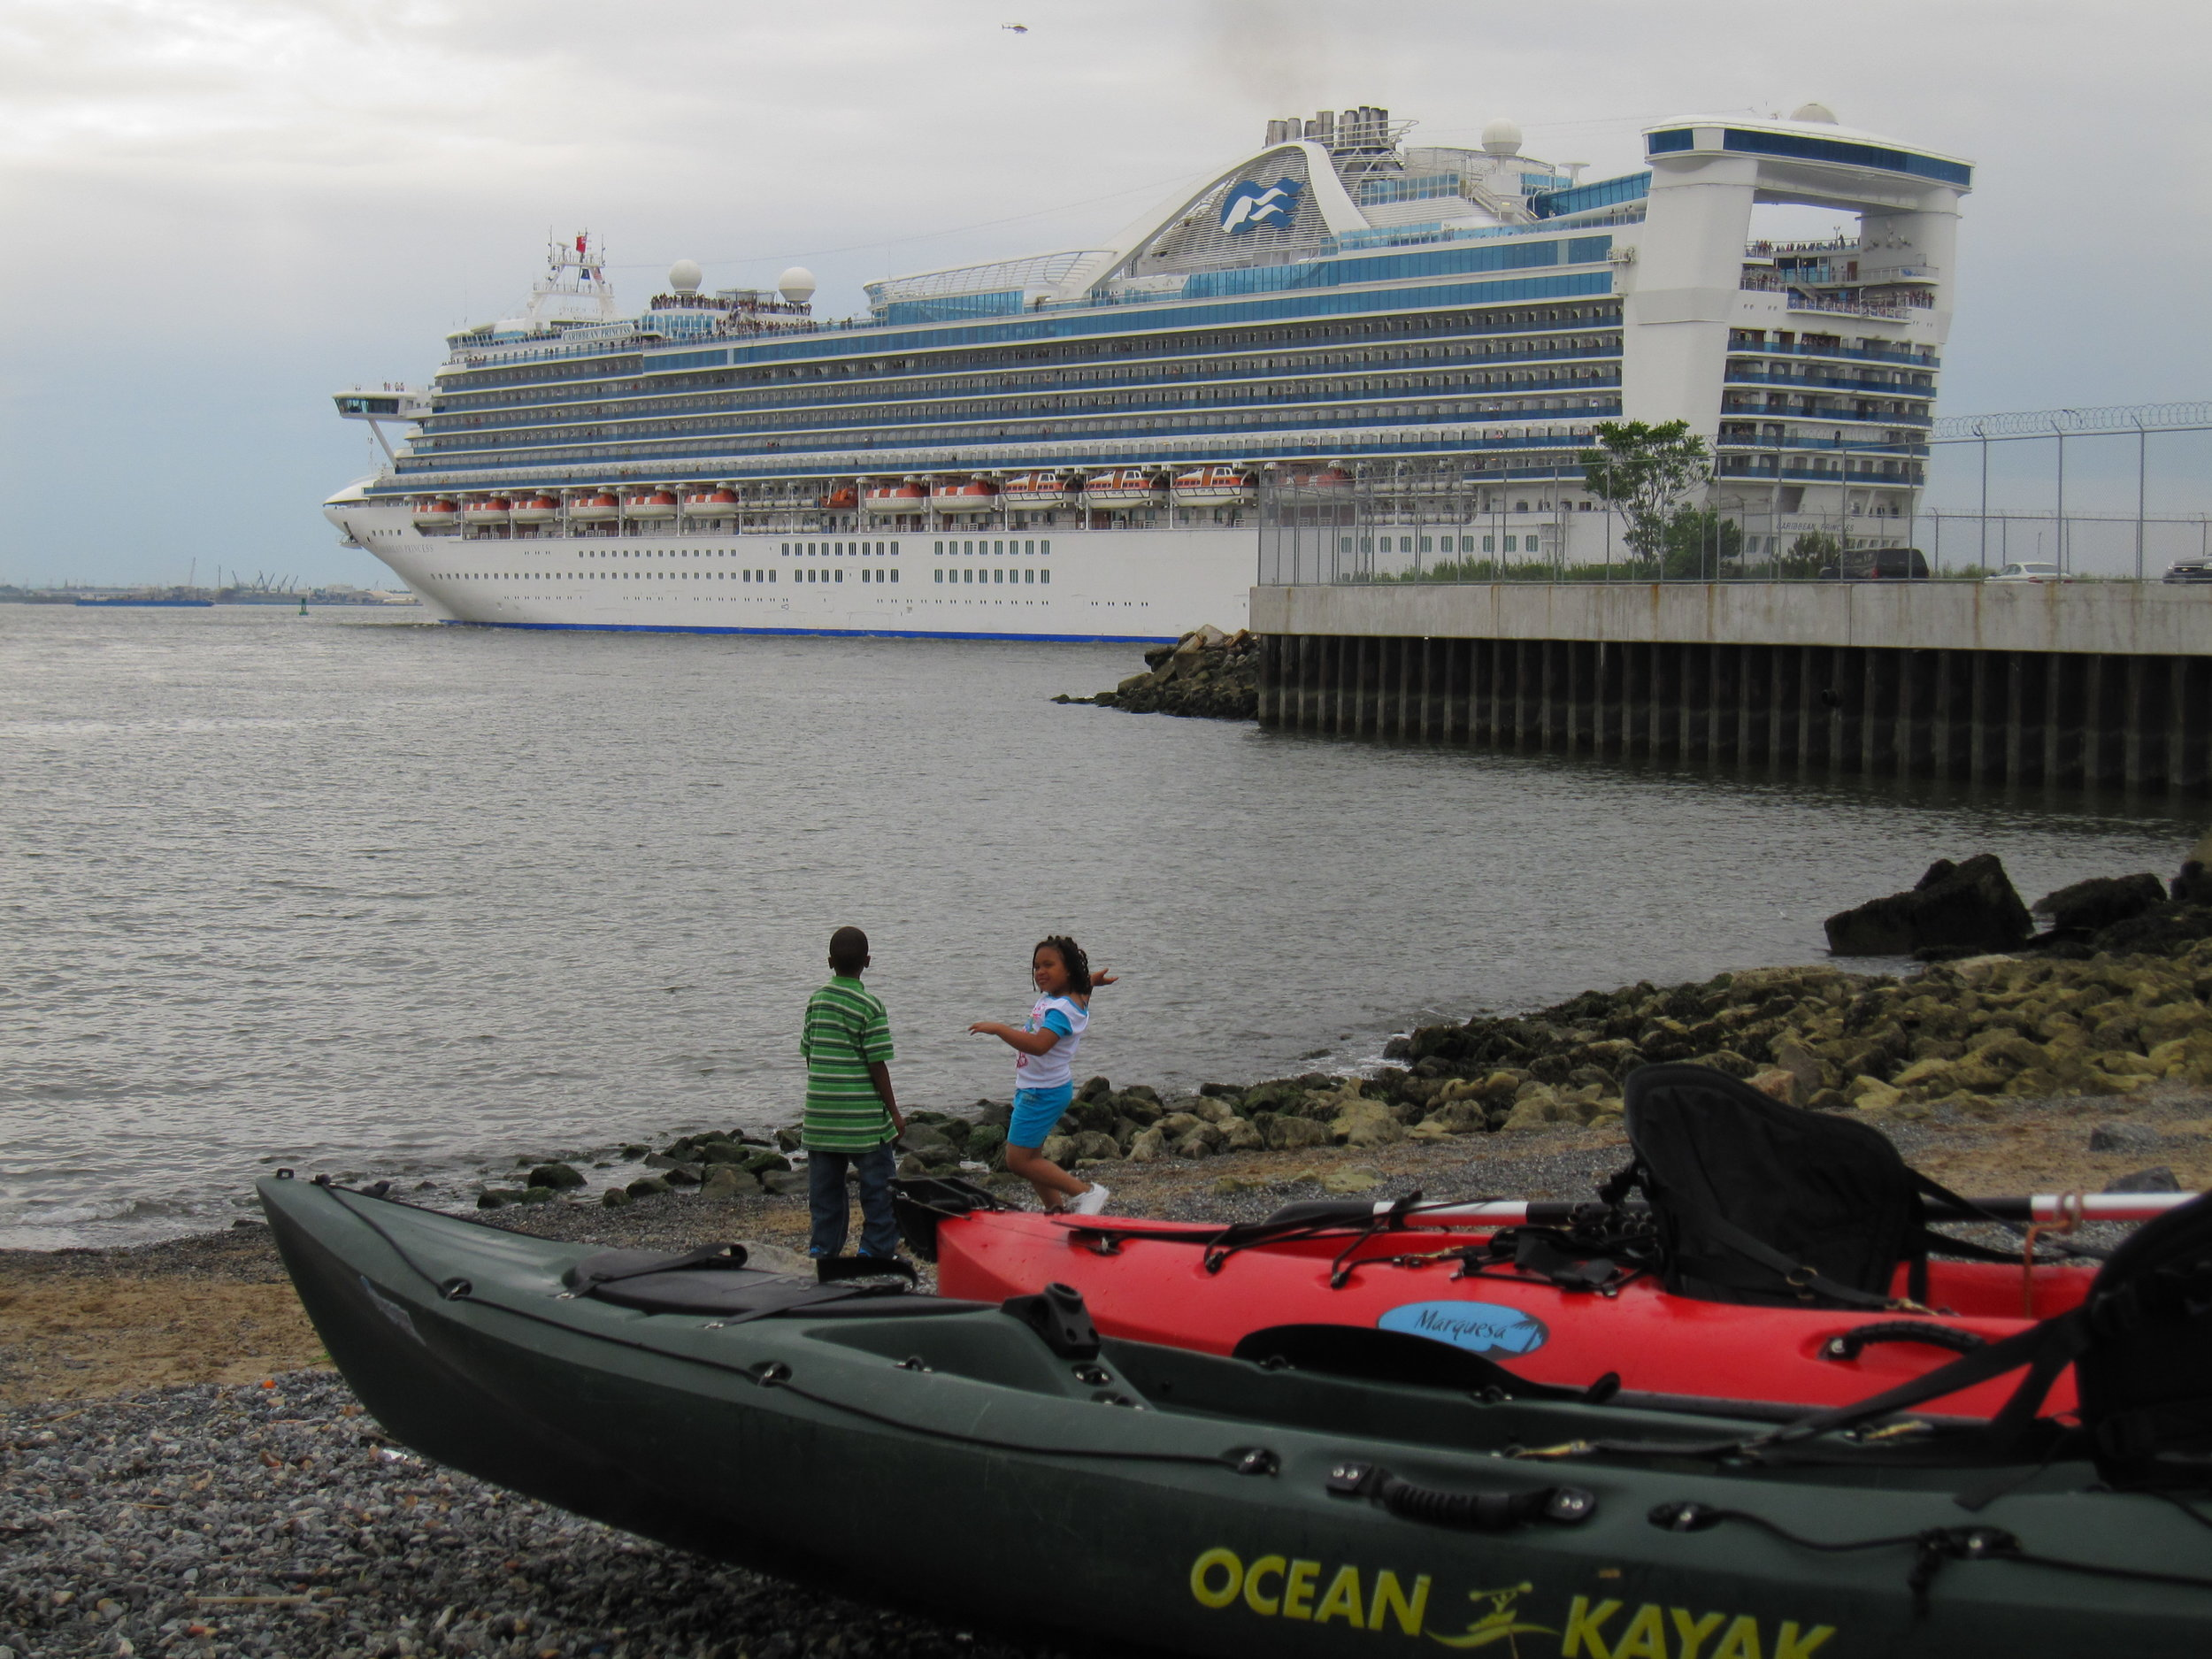 A cruise ship leaves the Brooklyn Cruise Terminal in Red Hook, close to the Valentino Park beach where kayaks come and go, an example of the huge difference in scale of boats in close proximity on NYC waterways.